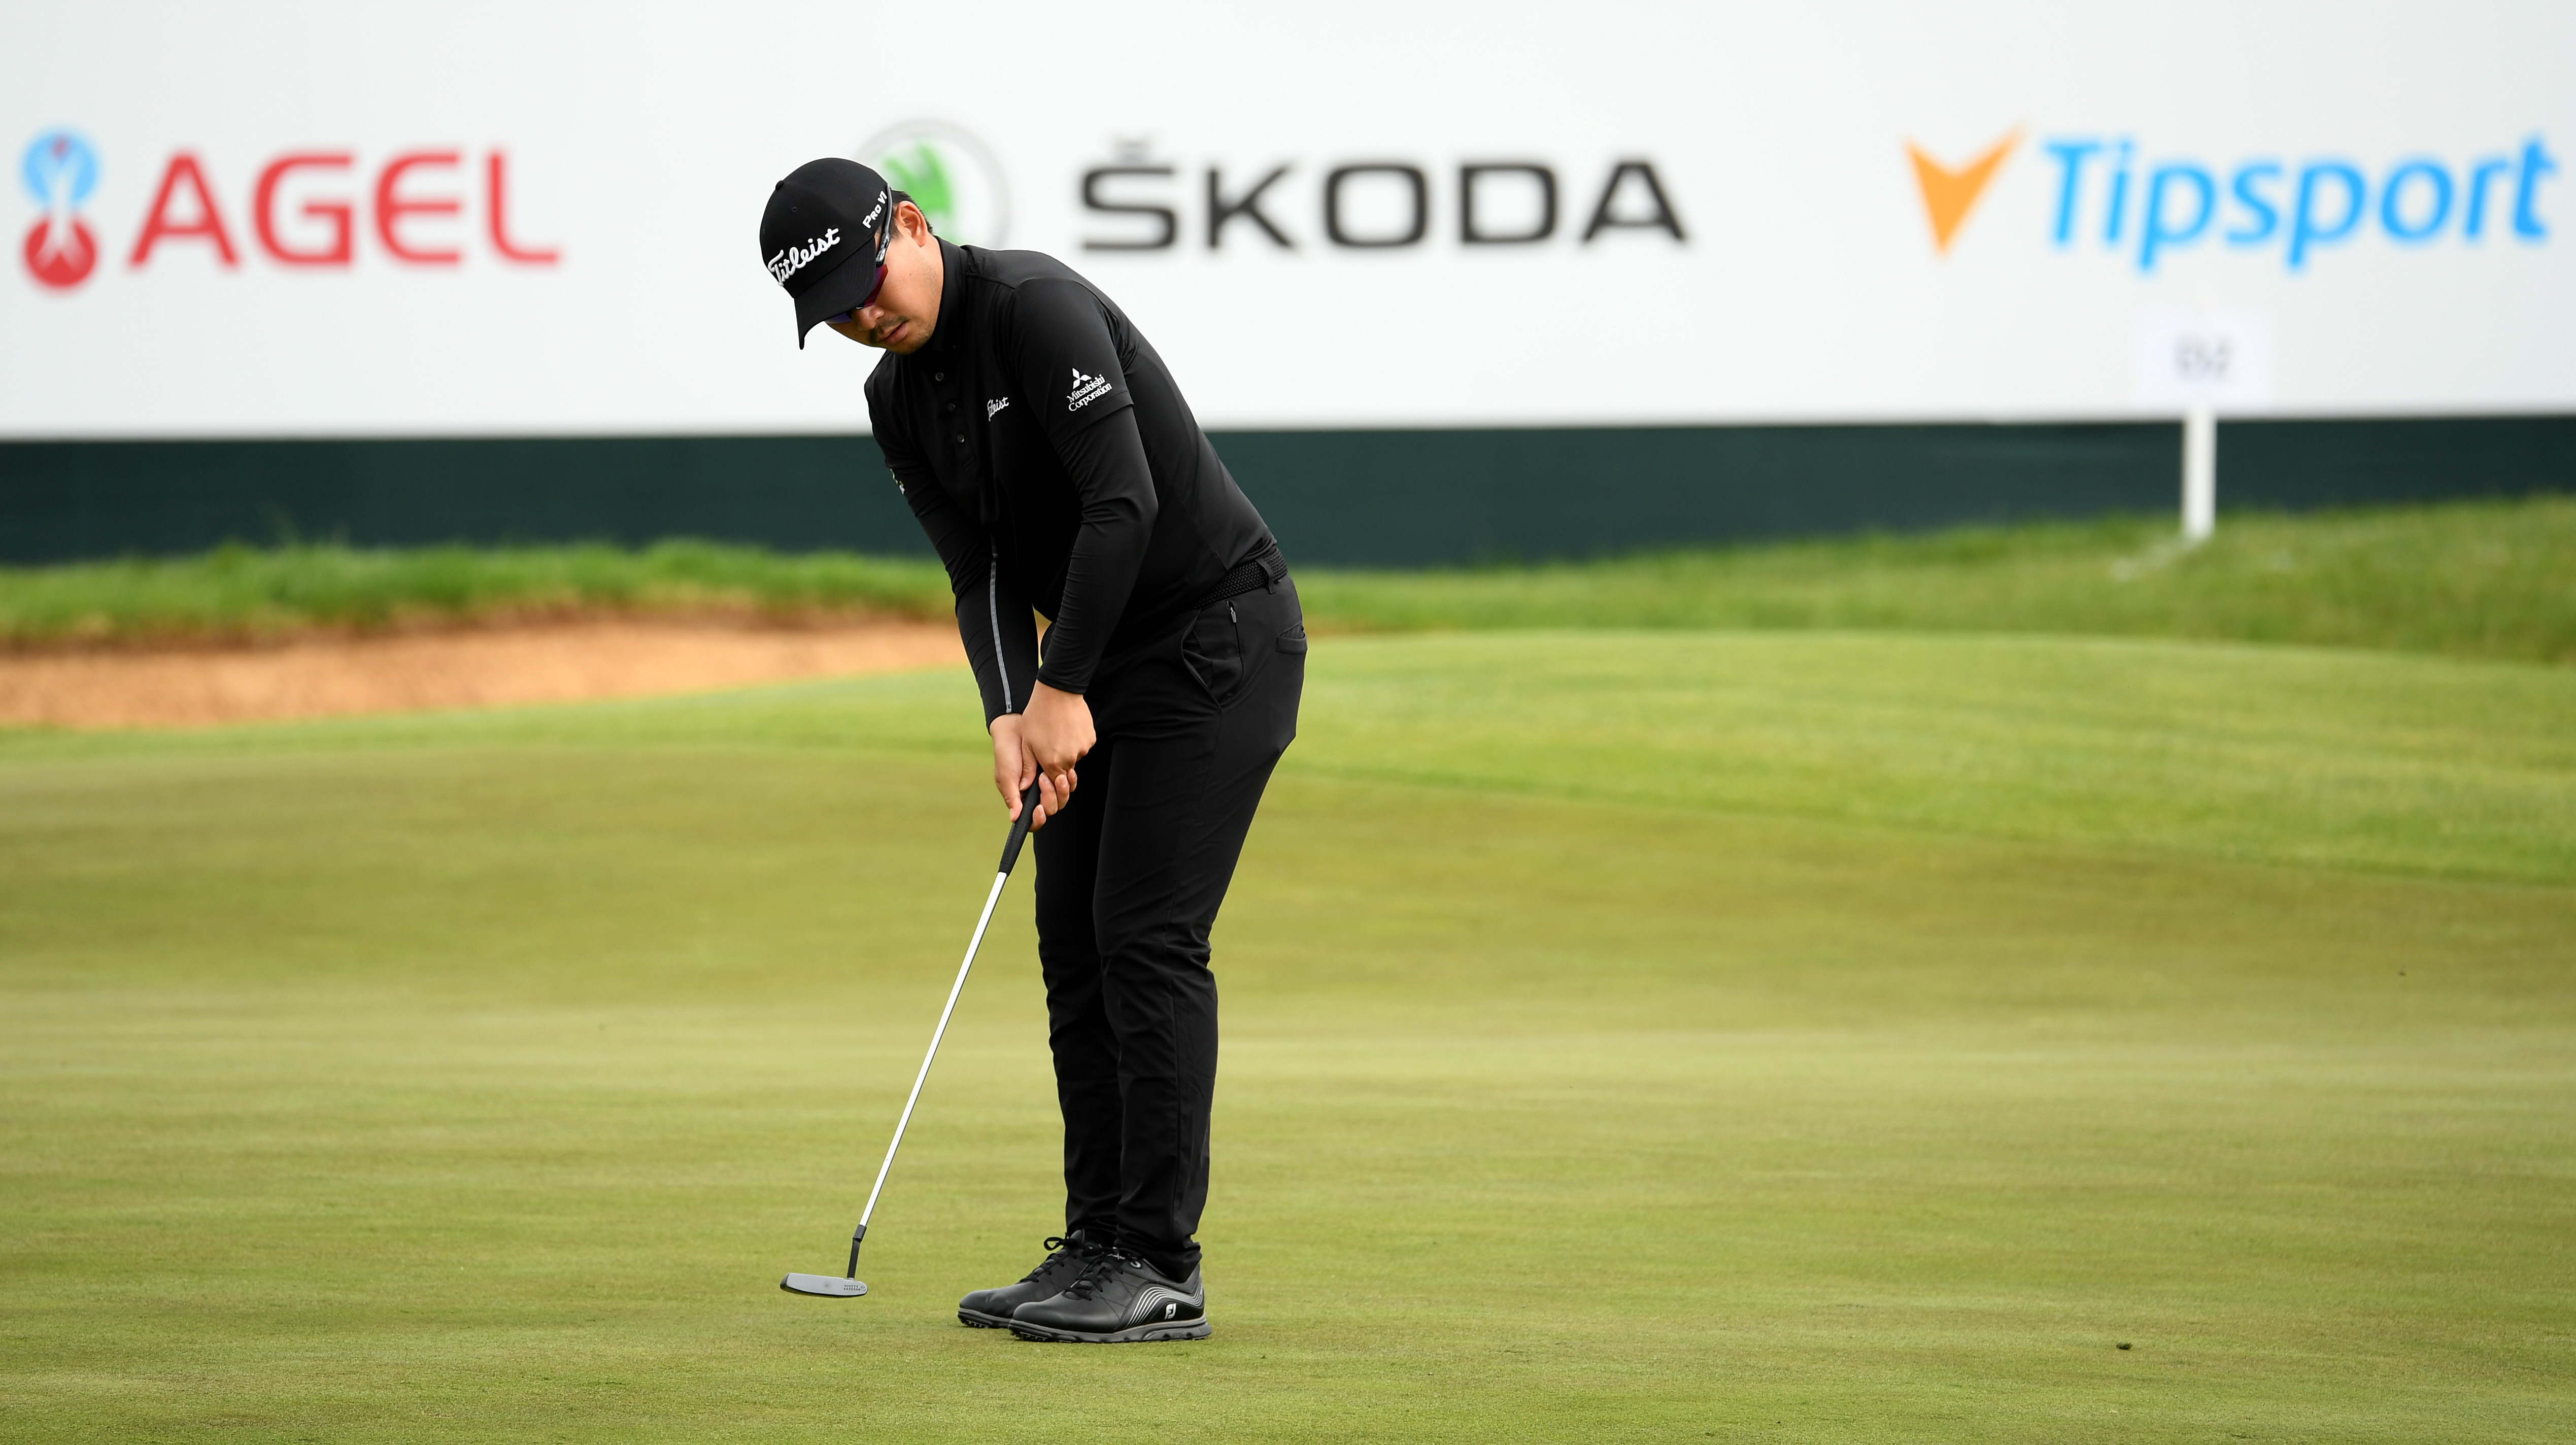 This walk-in putt puts Kevin Na to shame | Golf World | Golf Digest